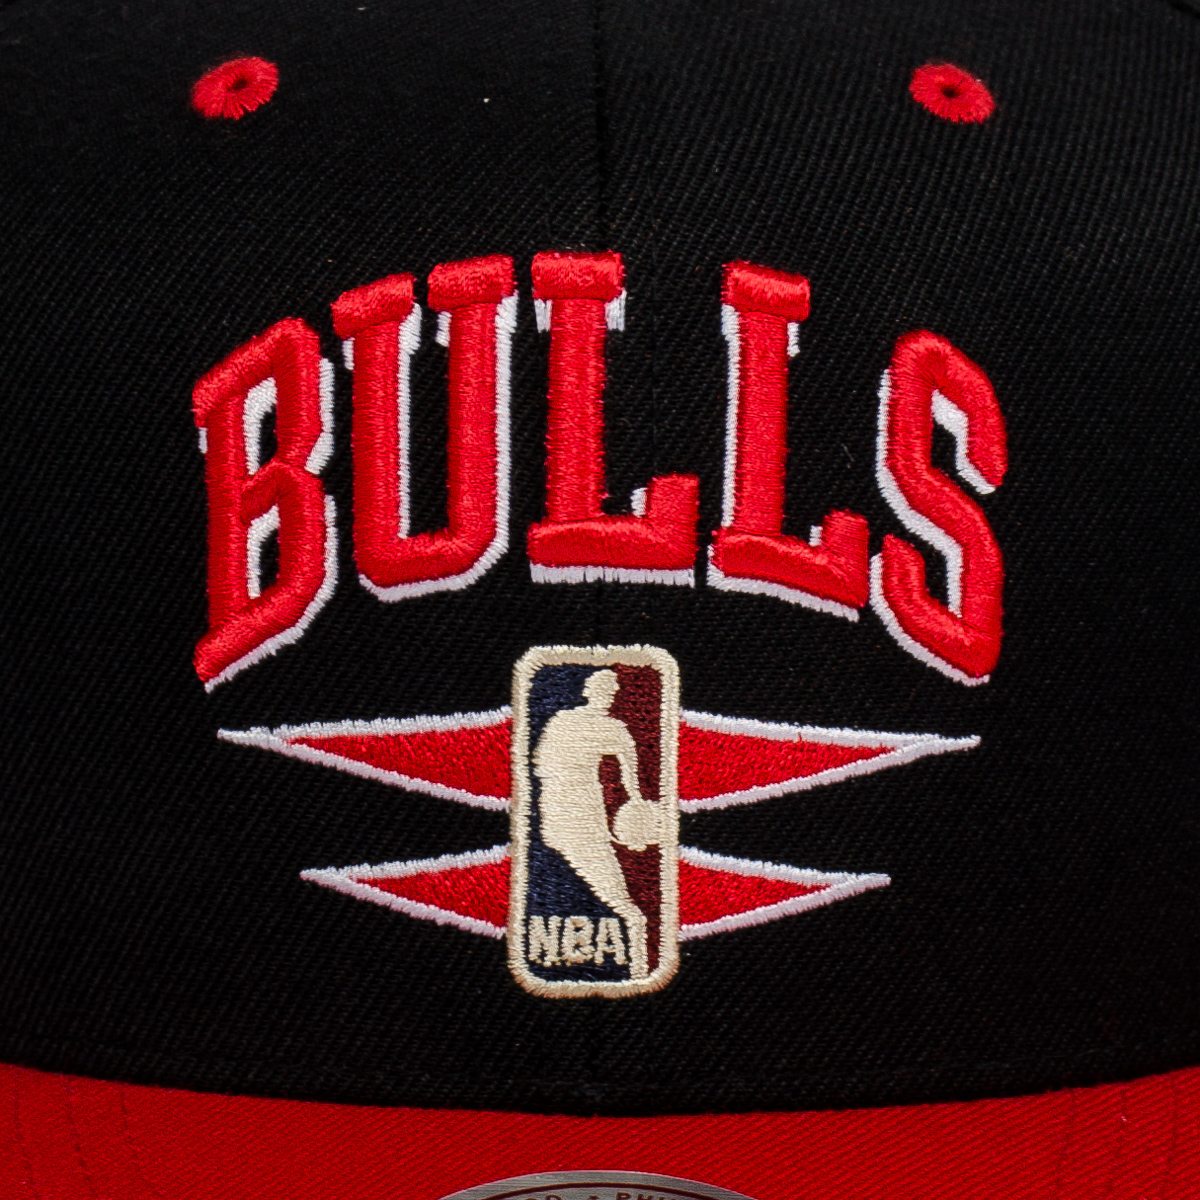 From Bulls hats and Chicago Bulls tees to shorts and Bulls basketball socks, show.